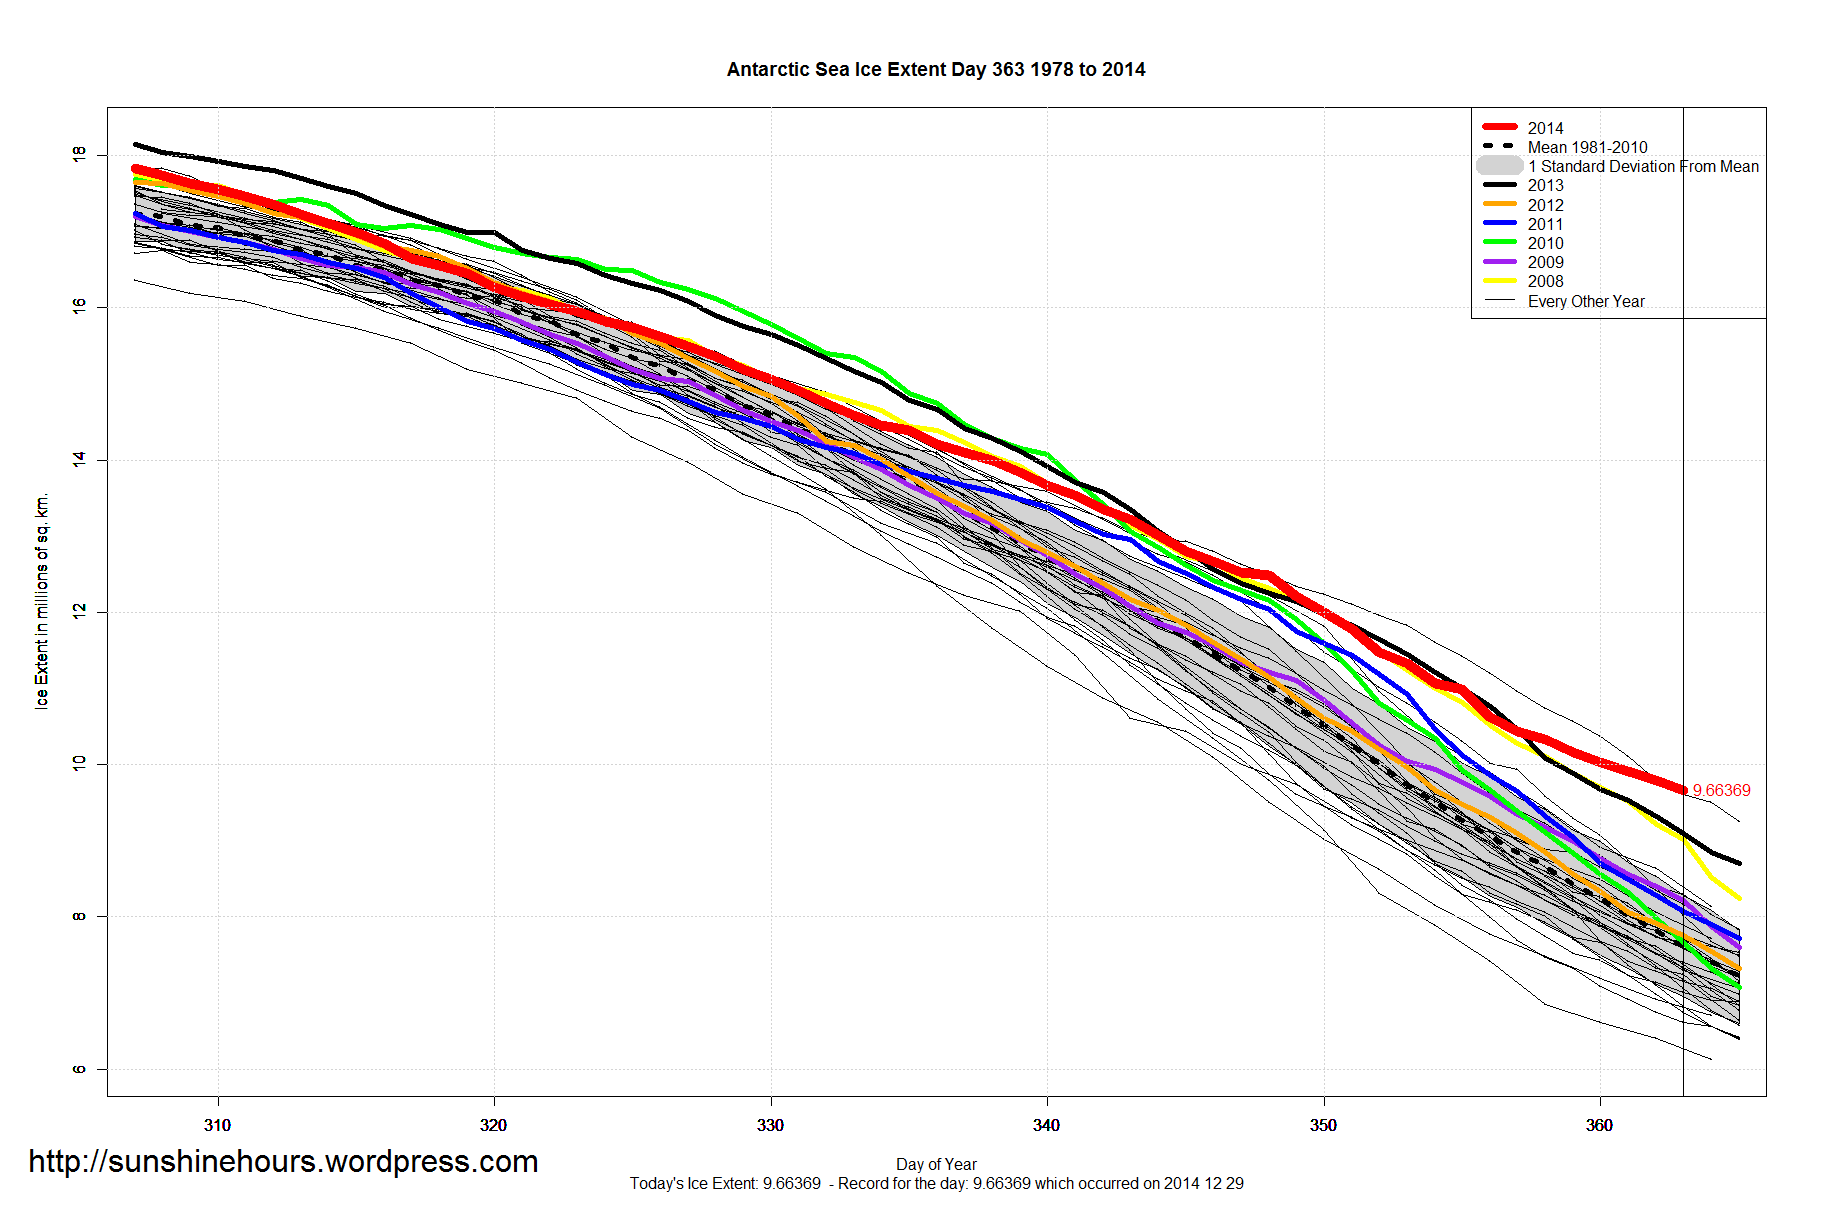 Antarctic_Sea_Ice_Extent_Zoomed_2014_Day_363_1981-2010